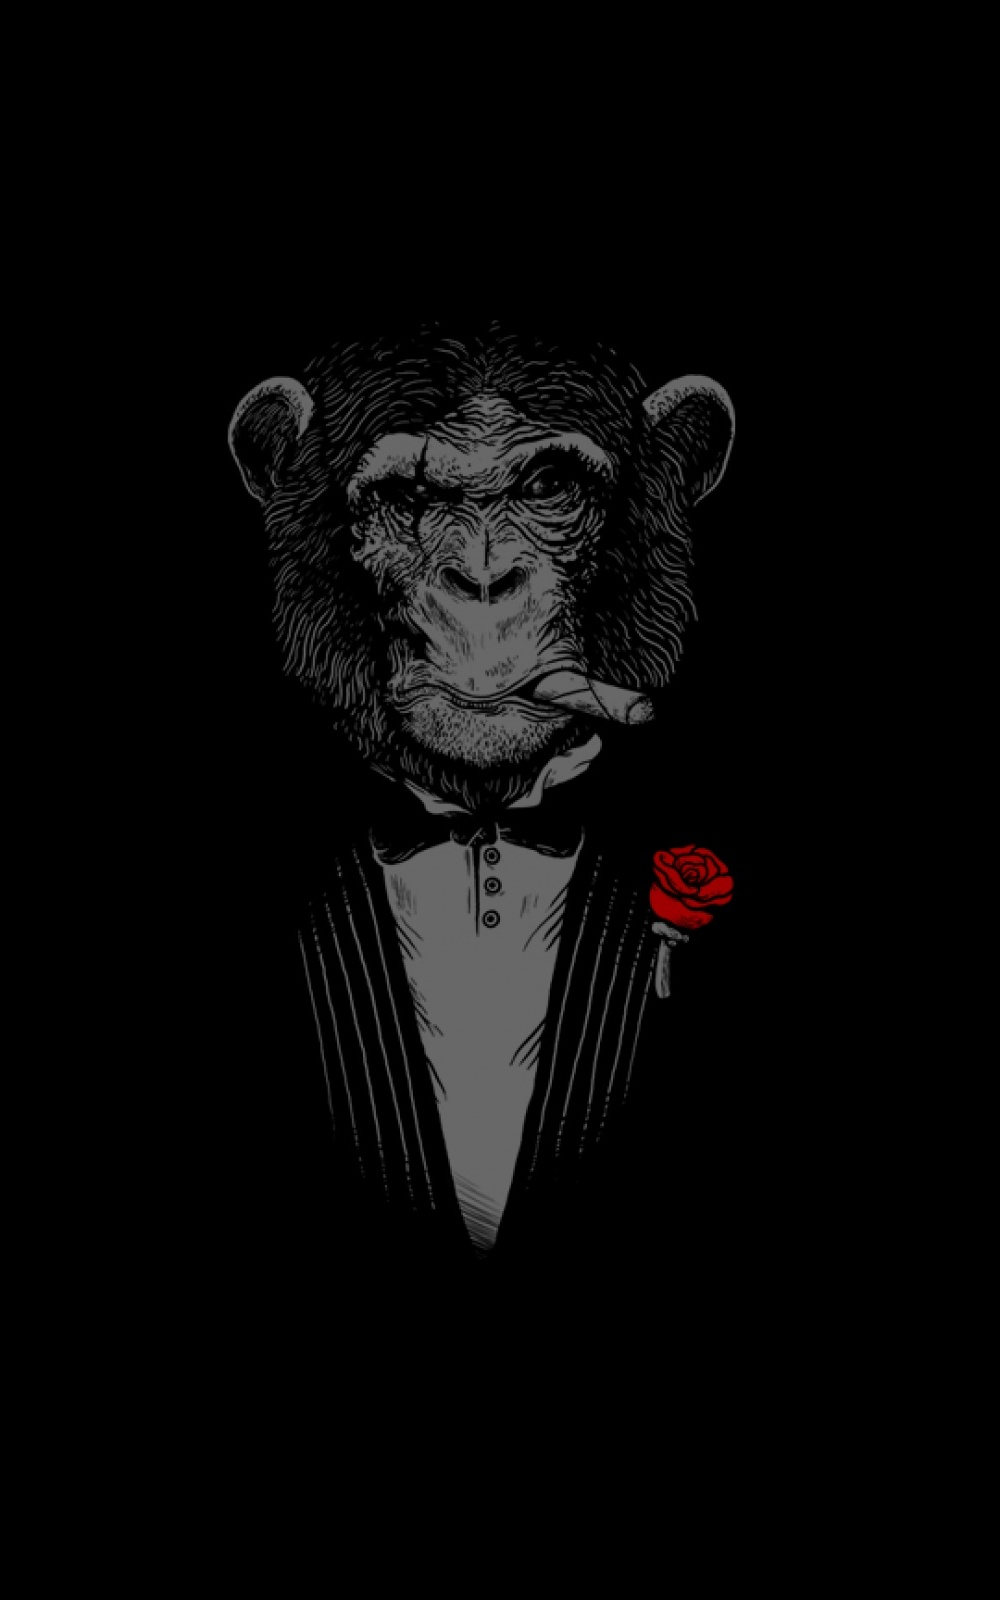 Chimpanzee Cigars Red Rose iPhone 6 Plus HD Wallpaper iPod Wallpaper 1000x1600